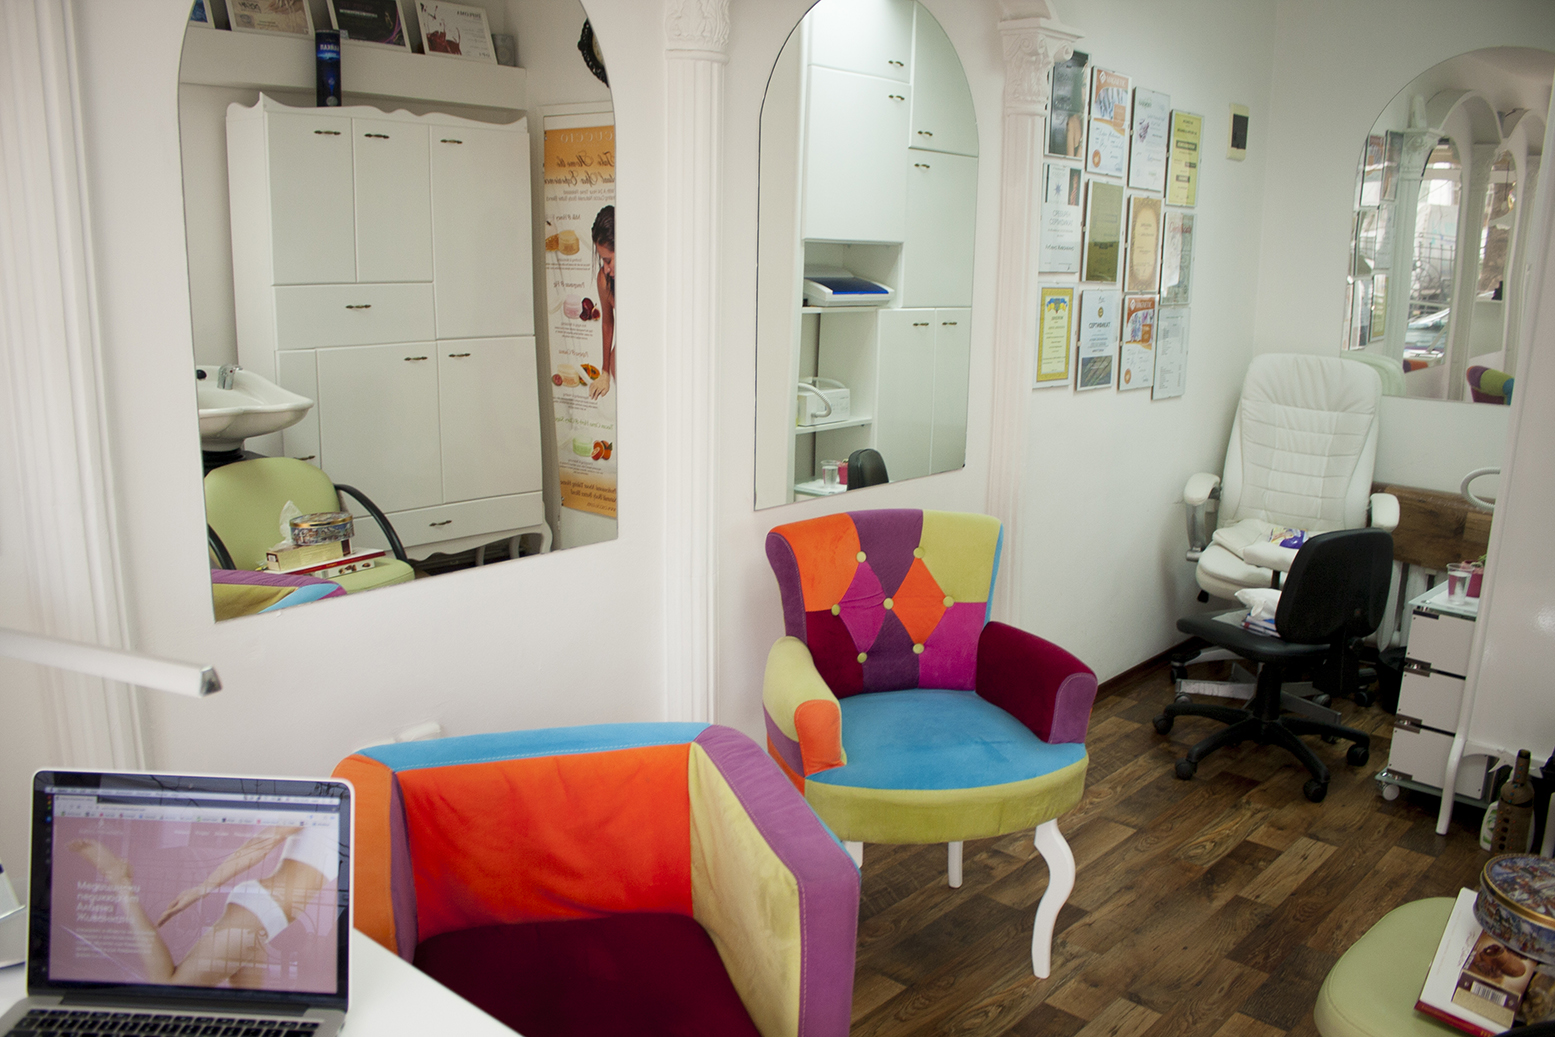 Albena Zhivankina's medical pedicure studio interior